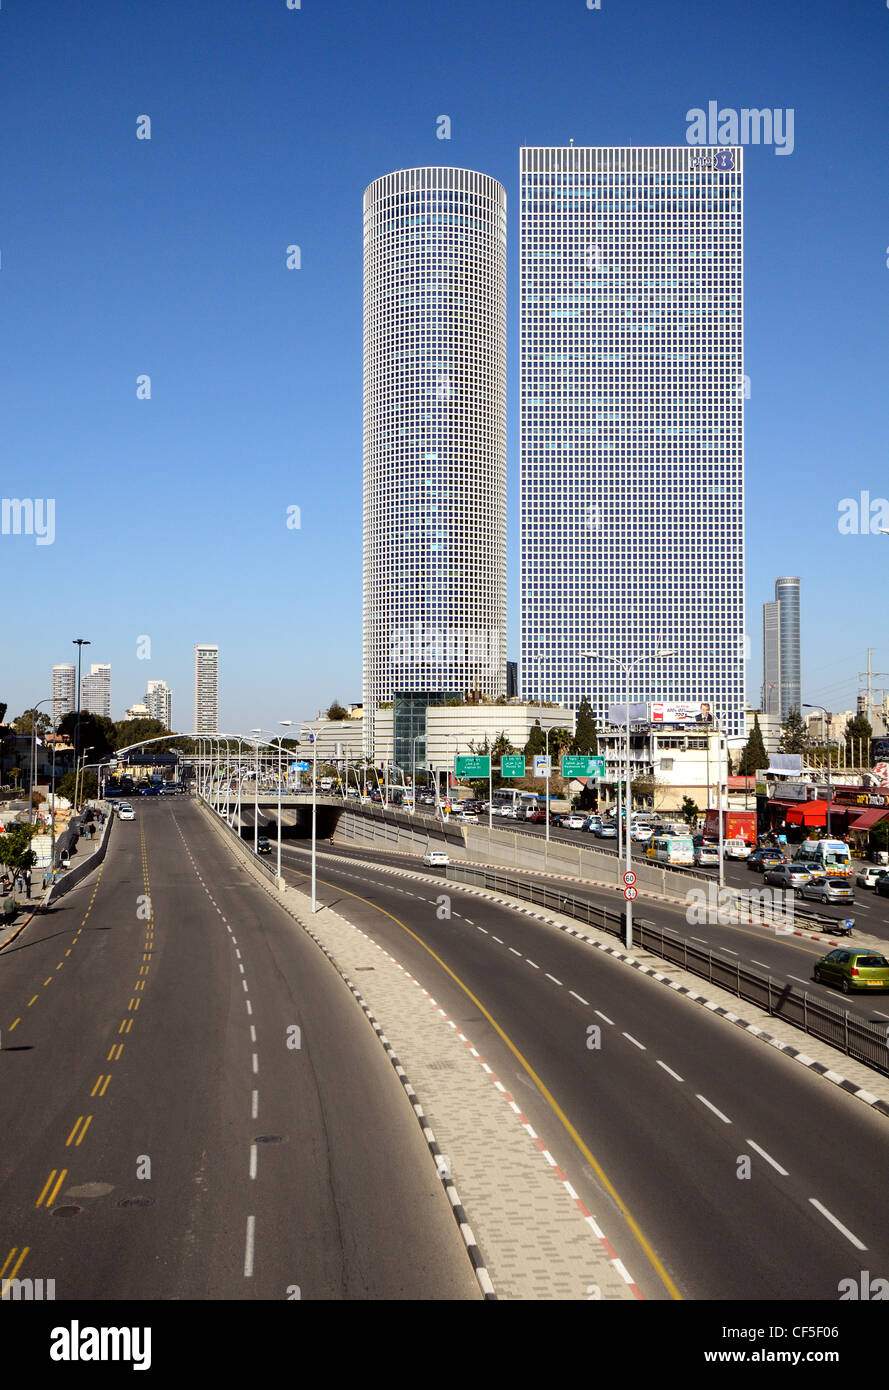 High rises in Tel Aviv, Israel - Stock Image